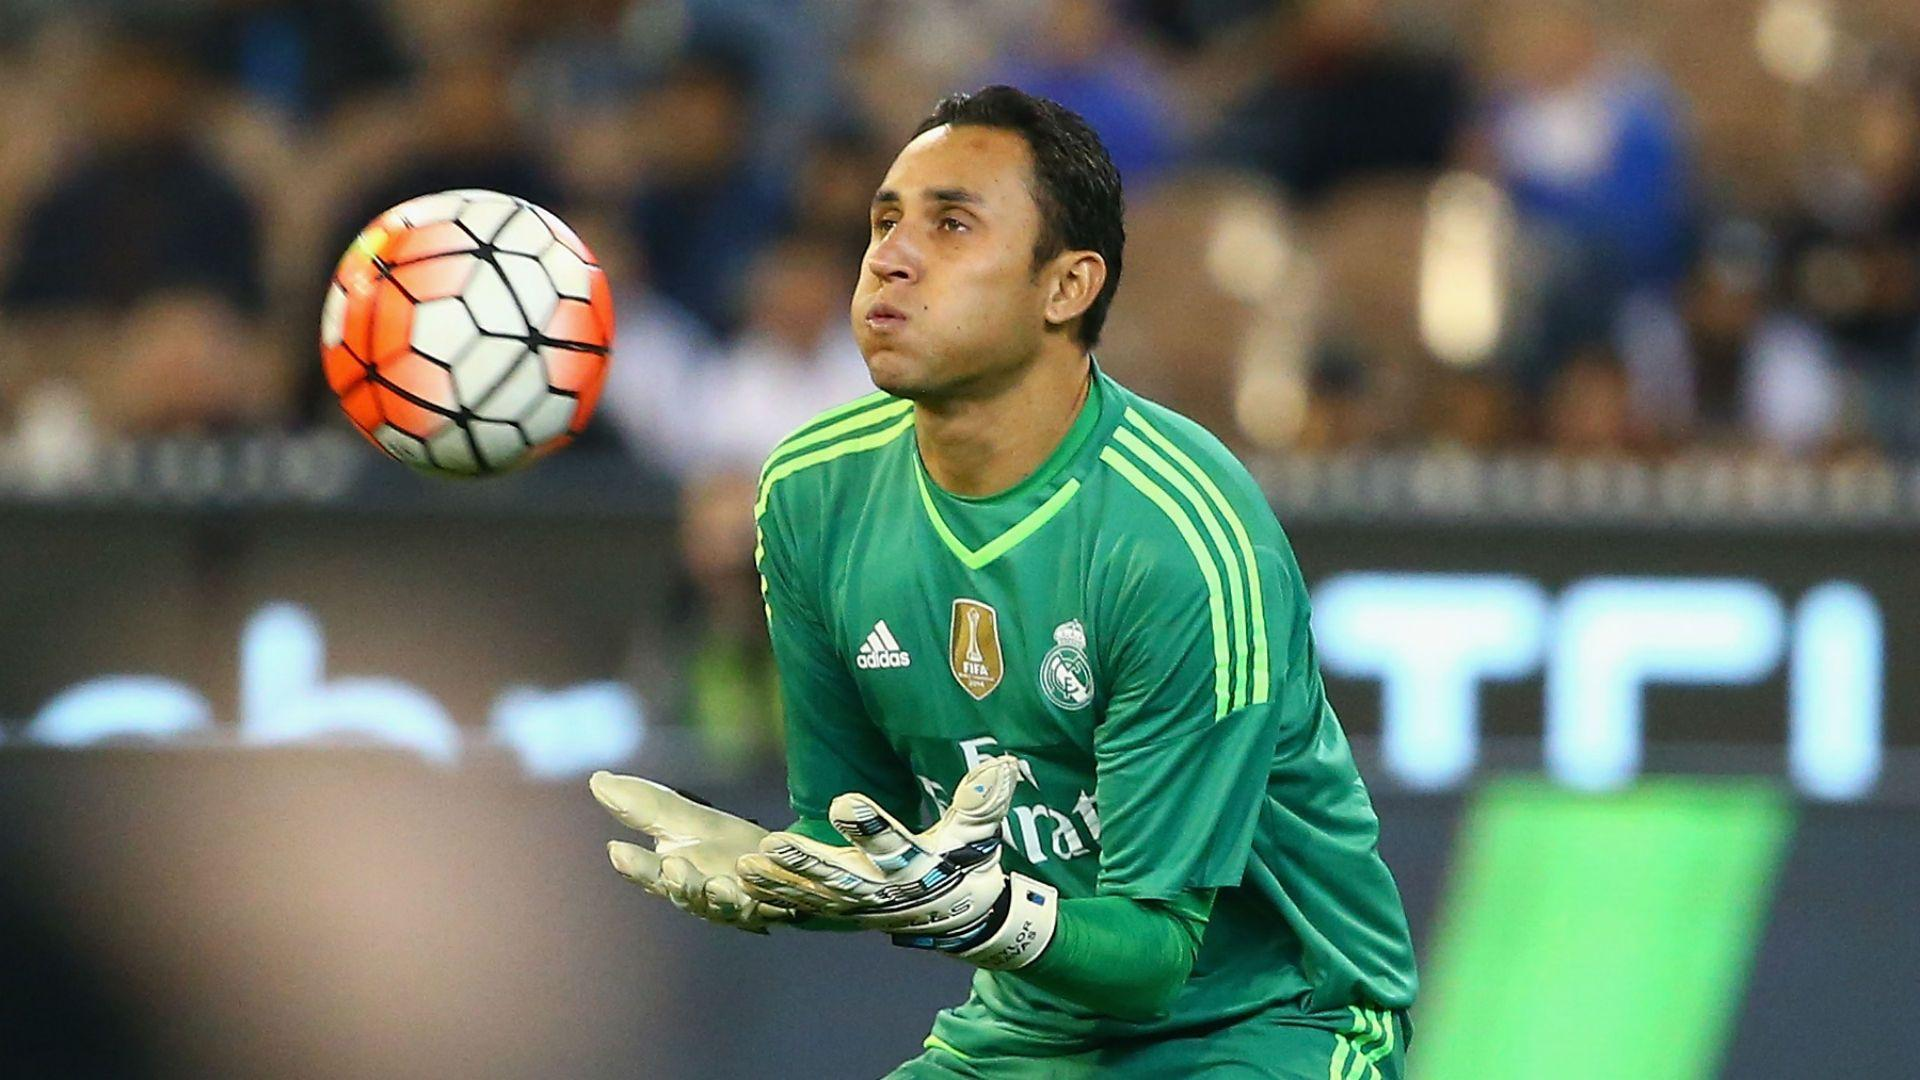 Real Madrid news: Keylor Navas wary of PSG threat - Goal.com